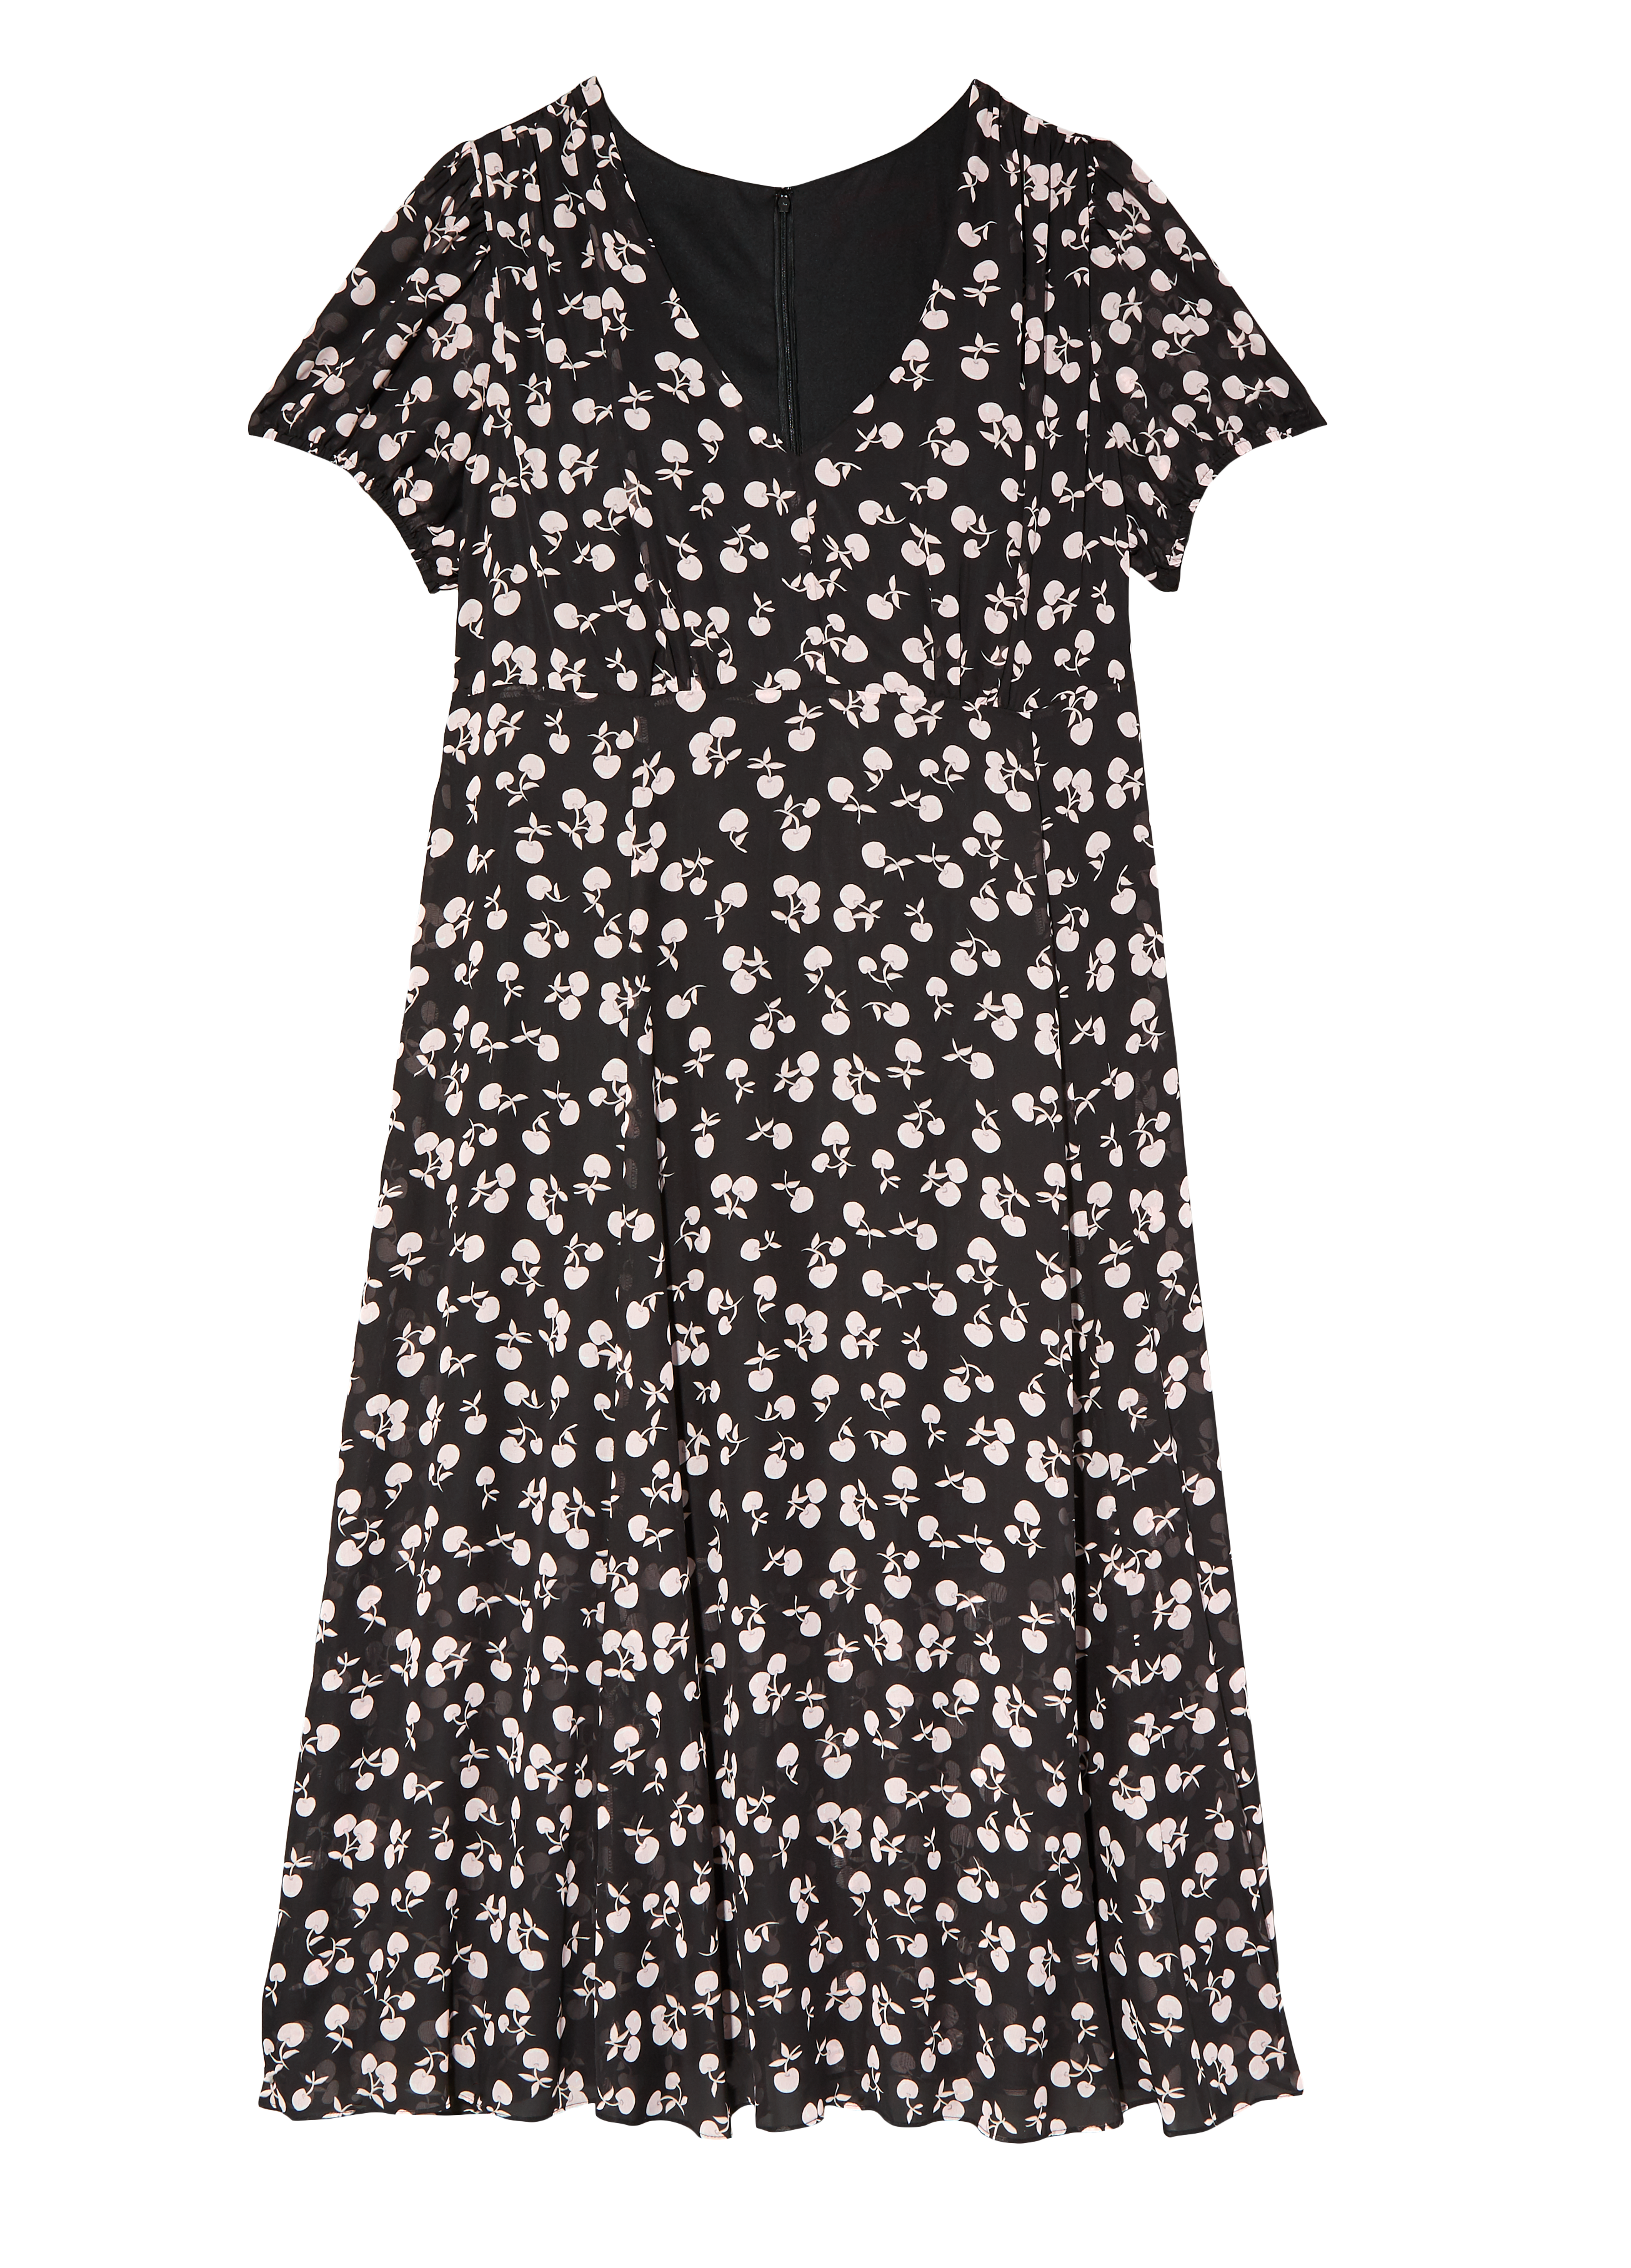 betsey-johnson-floral-e1556045354141.png